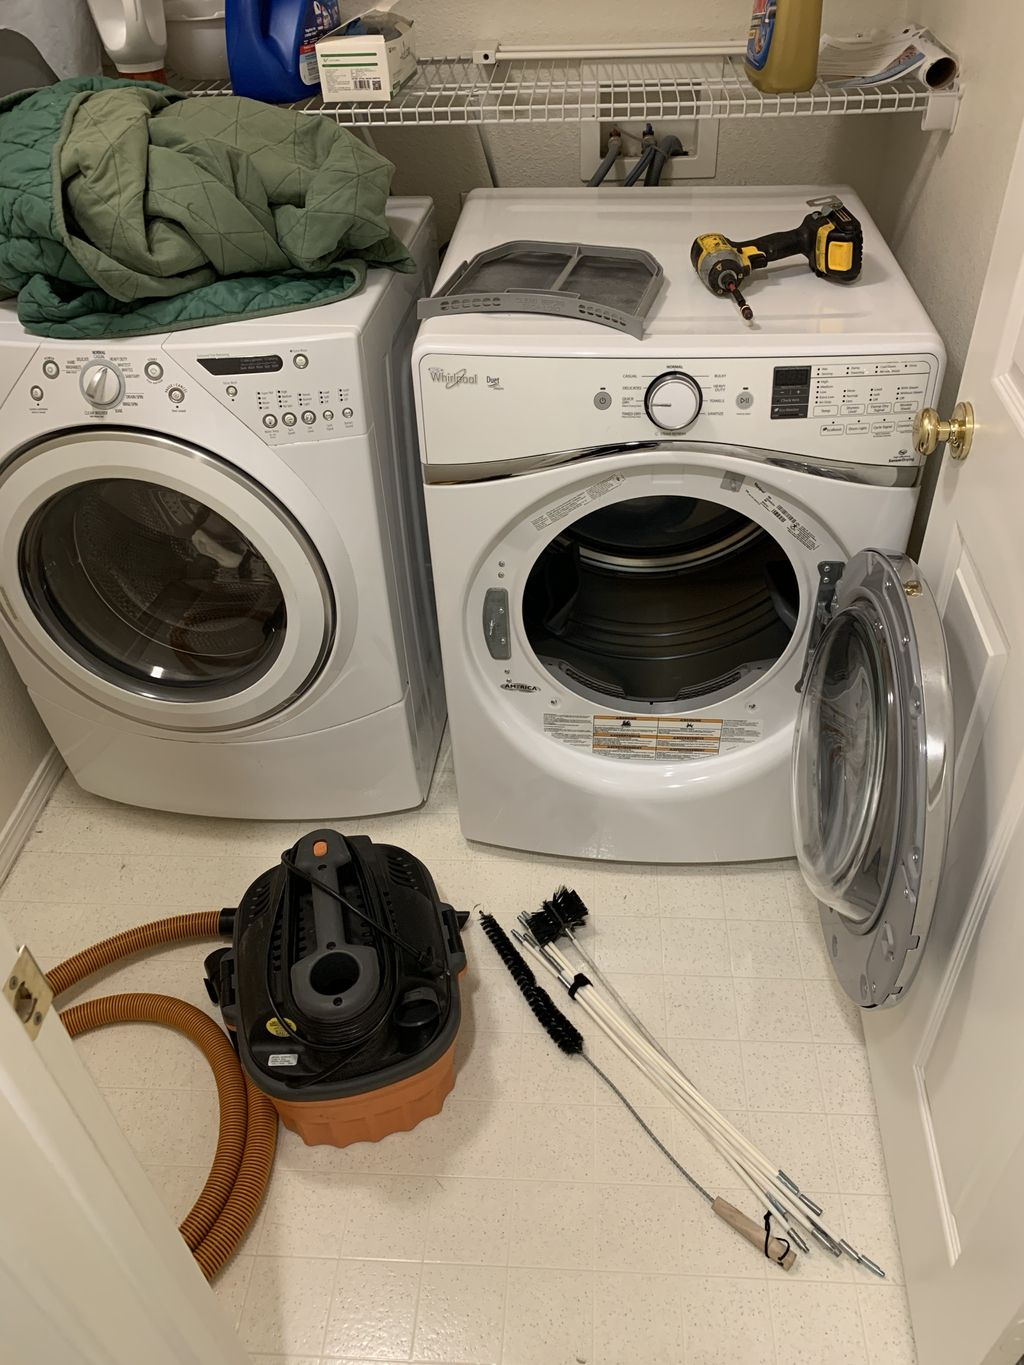 Dryer deep cleaning service